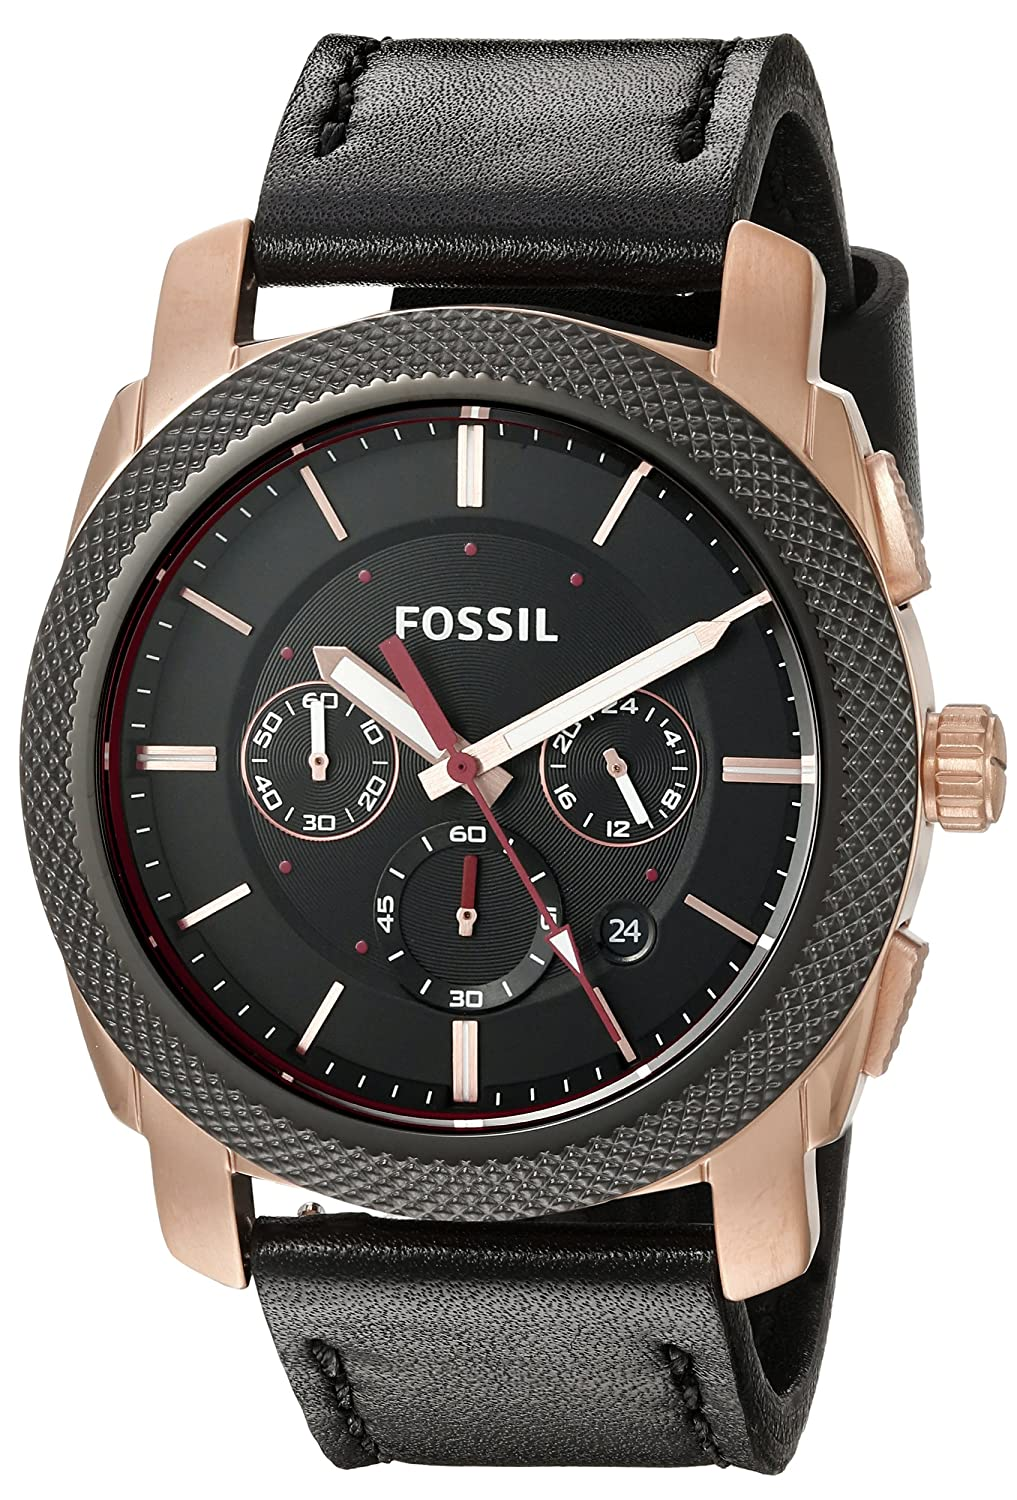 buy fossil end of season machine analog black dial men s watch buy fossil end of season machine analog black dial men s watch fs5120 online at low prices in amazon in